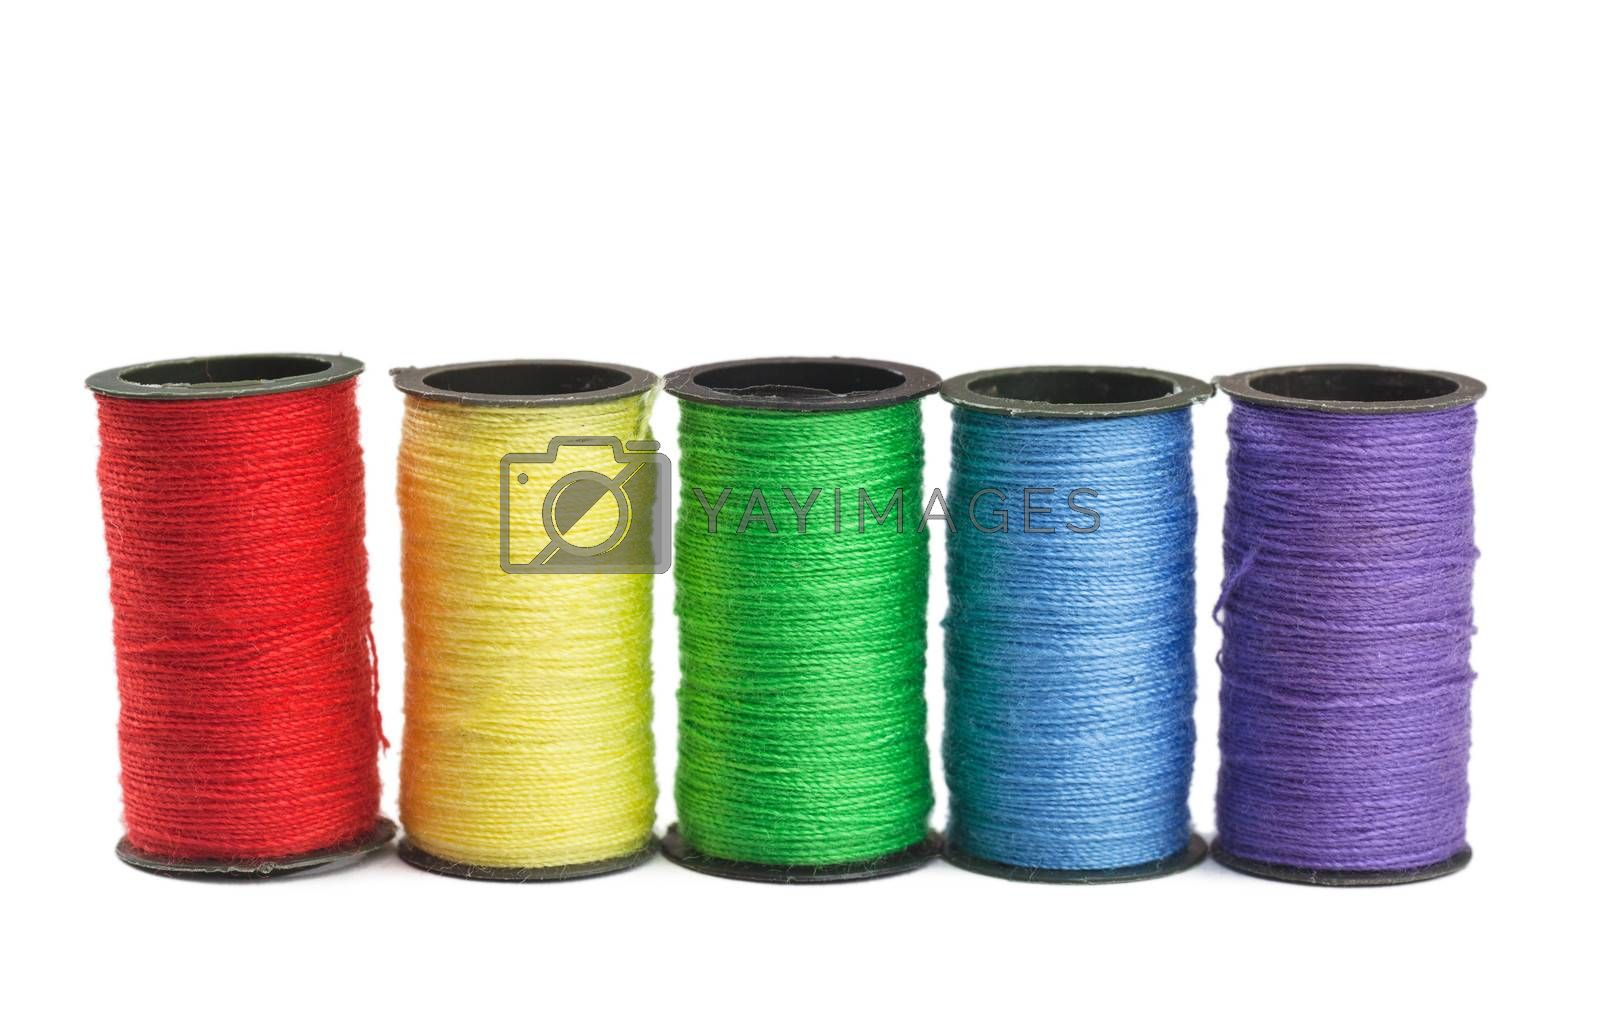 Colorful spools with green, blue, yellow and red threads